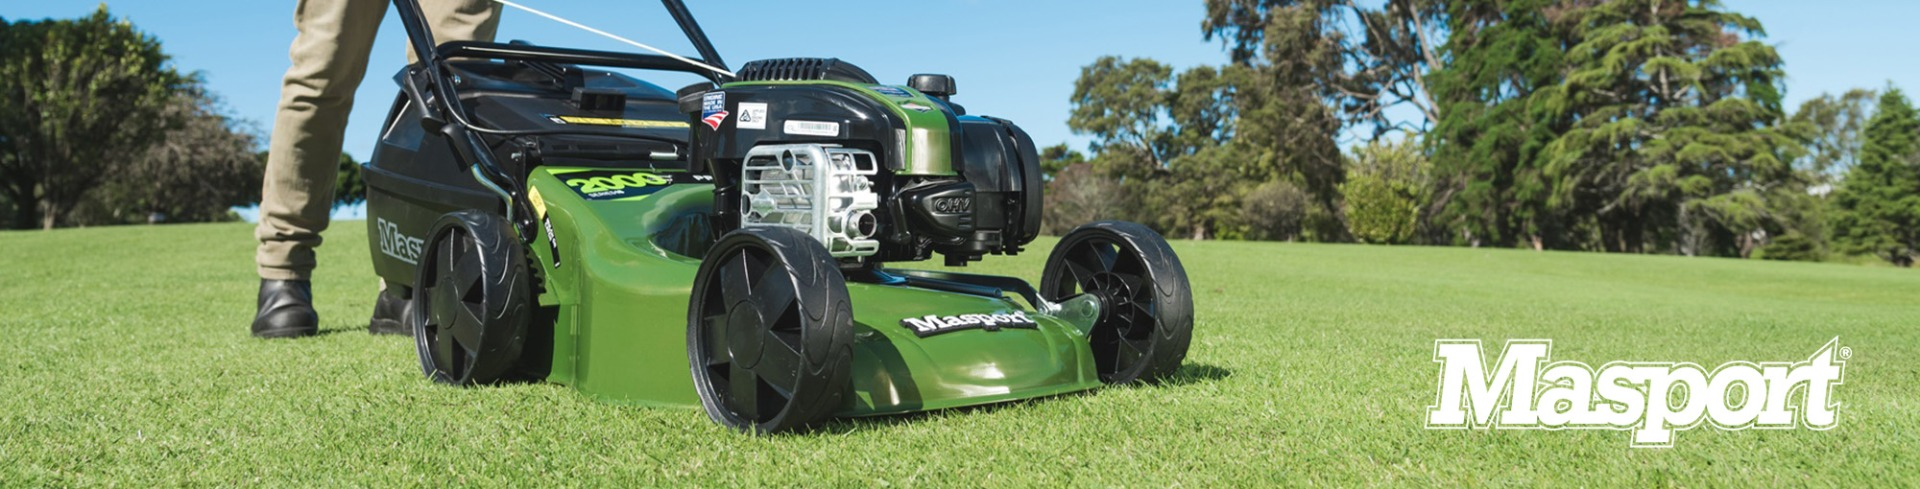 Autumn Promotion Masport petrol lawnmowers